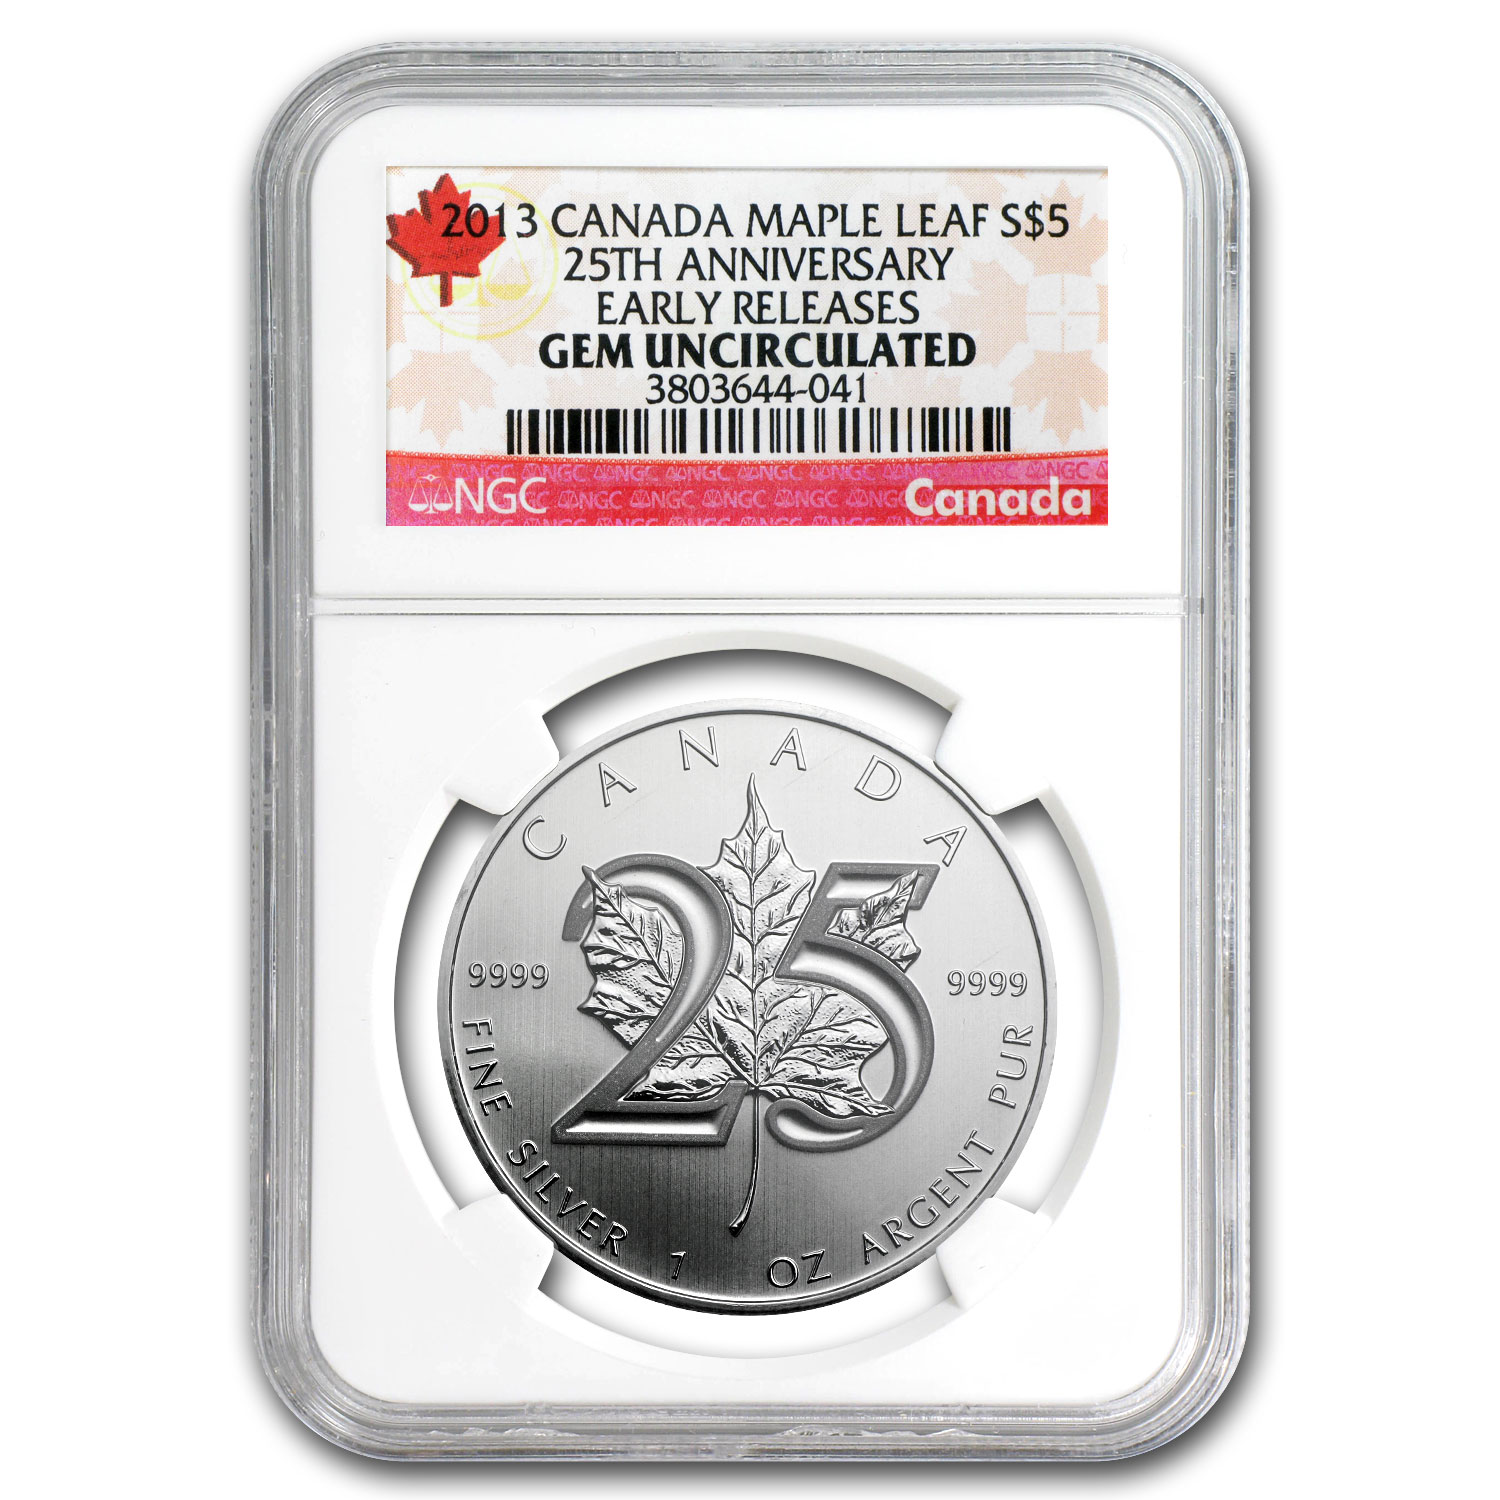 2013 1 oz Silver Canadian Maple Leaf Gem Unc NGC (ER) (25th Aniv)